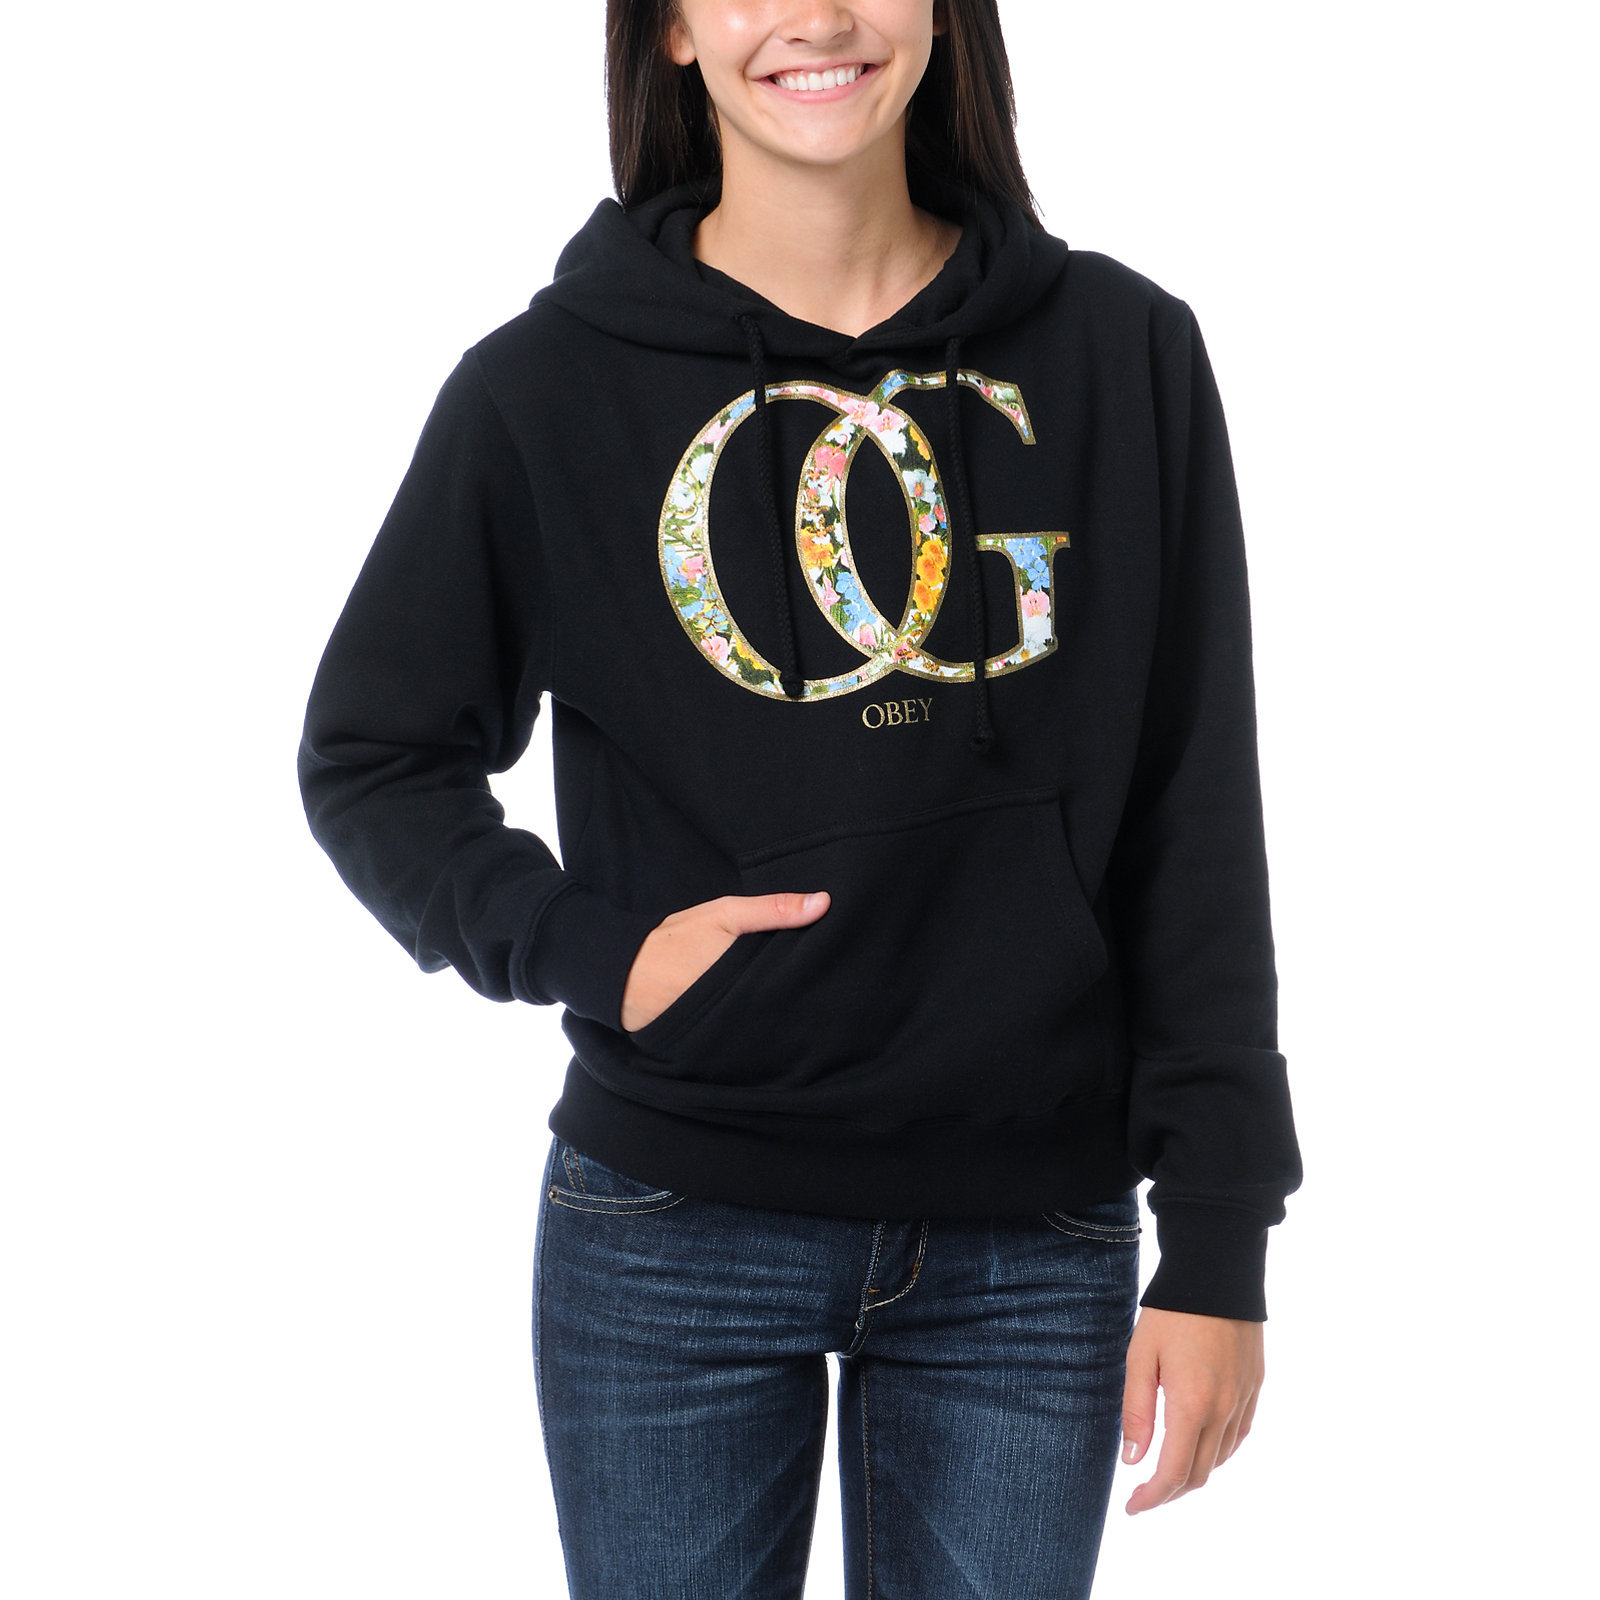 obey hoodies for girls wwwimgkidcom the image kid